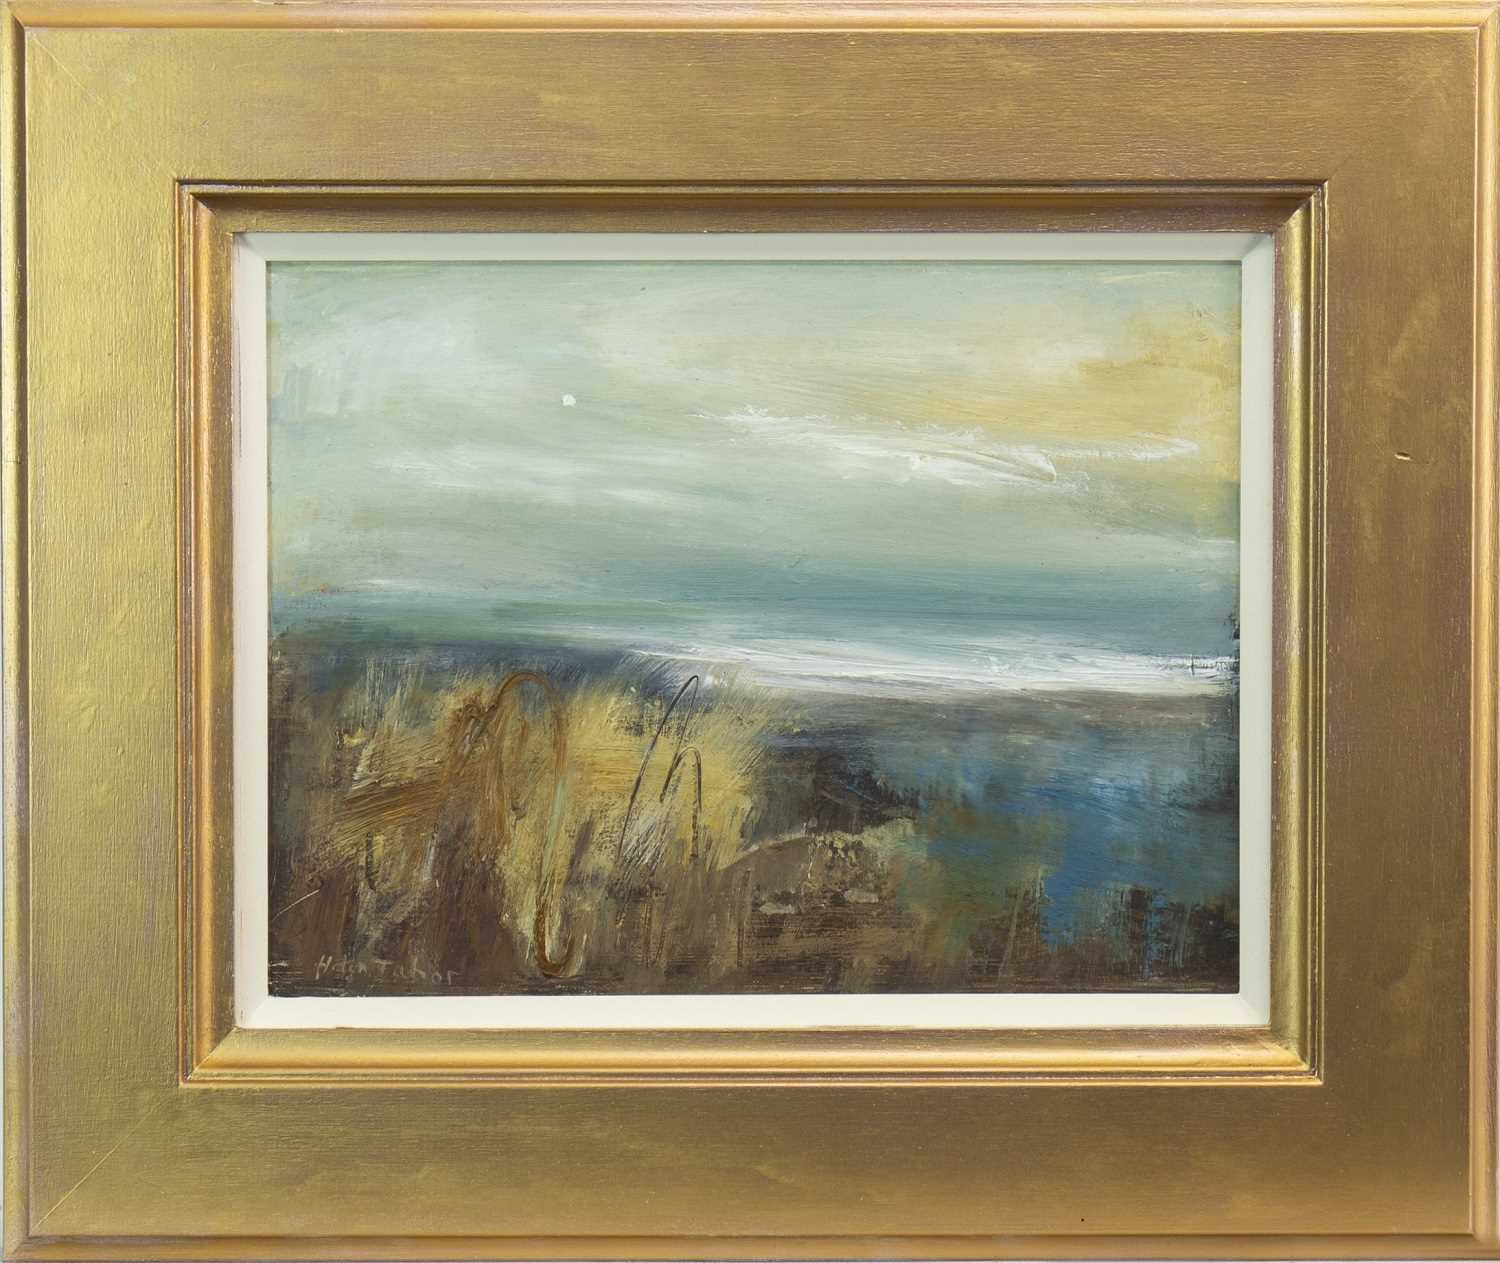 Lot 513-LANDSCAPE, AN OIL BY HELEN TABOR